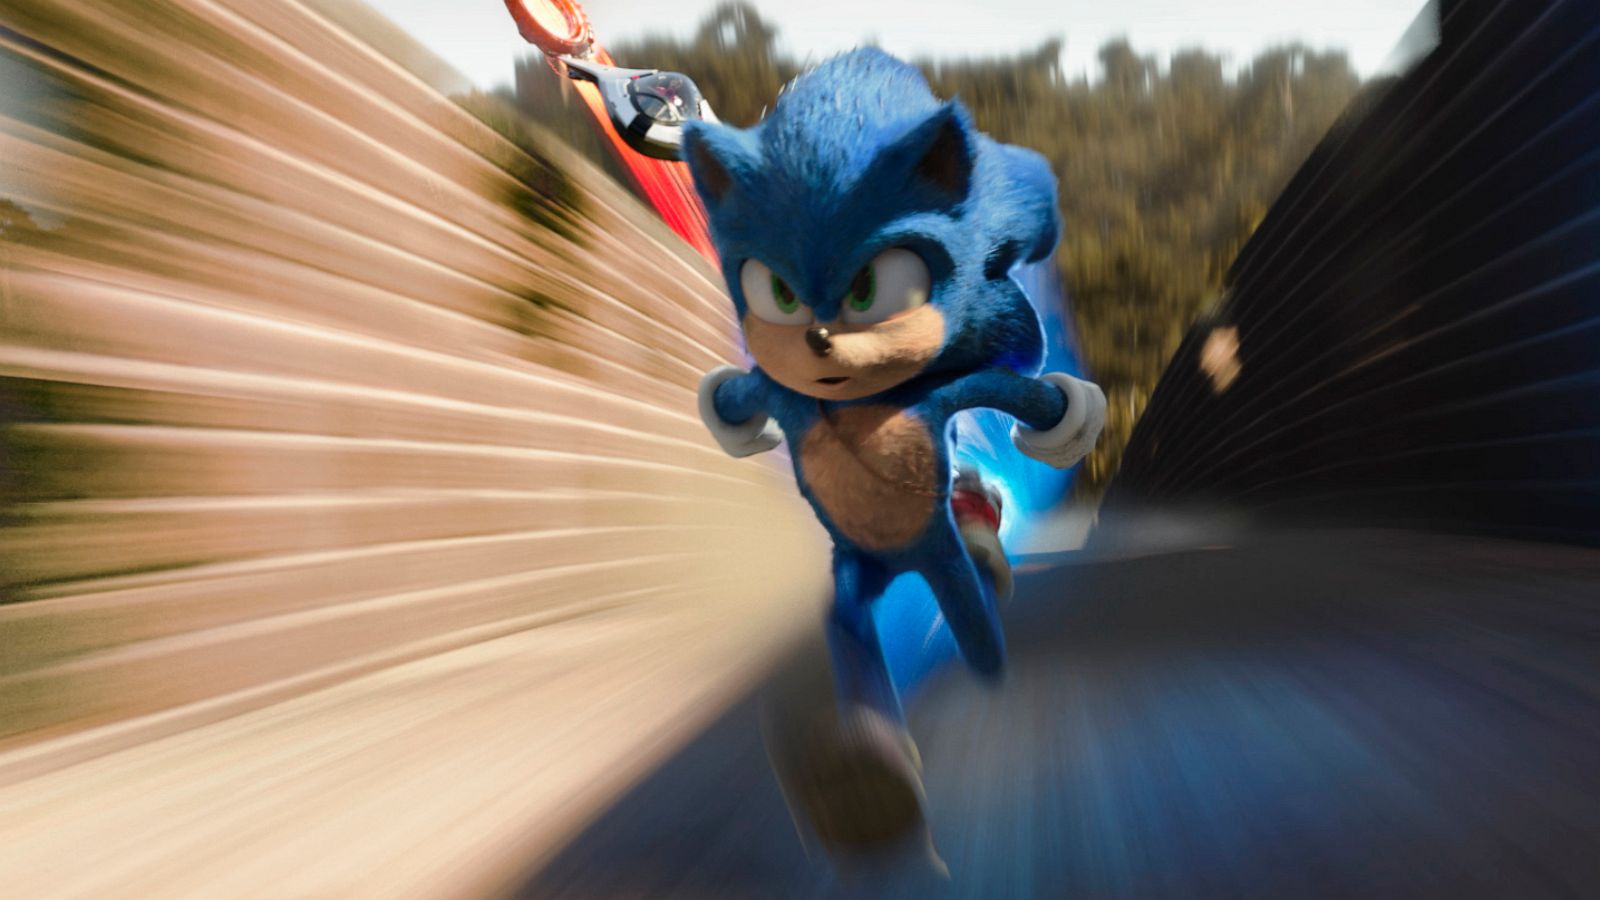 Review Why Wait Sonic The Hedgehog Worth Rushing To See Abc News